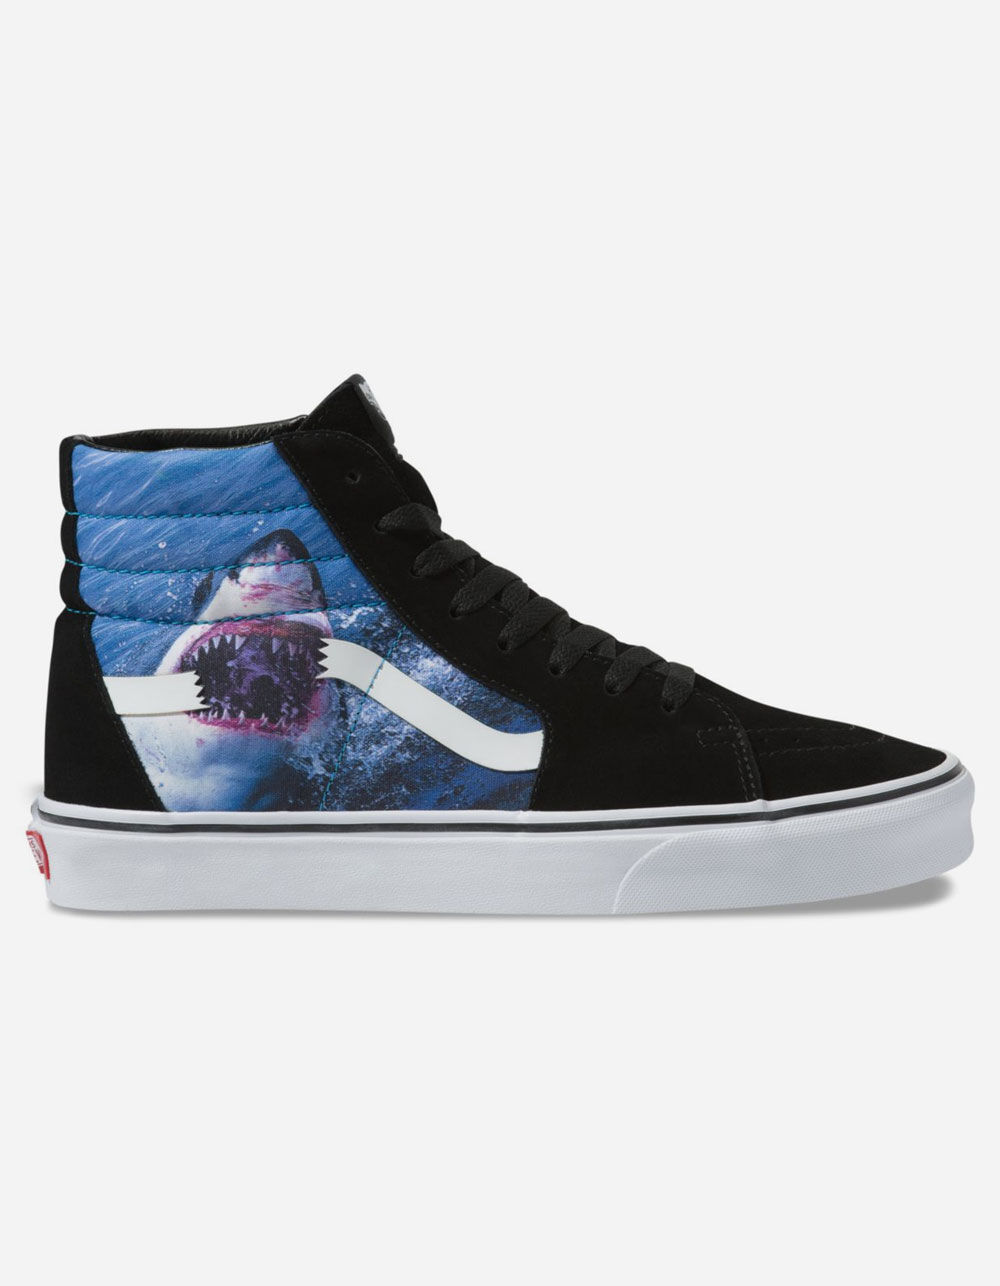 VANS x Shark Week Sk8-Hi Black & True White Shoes